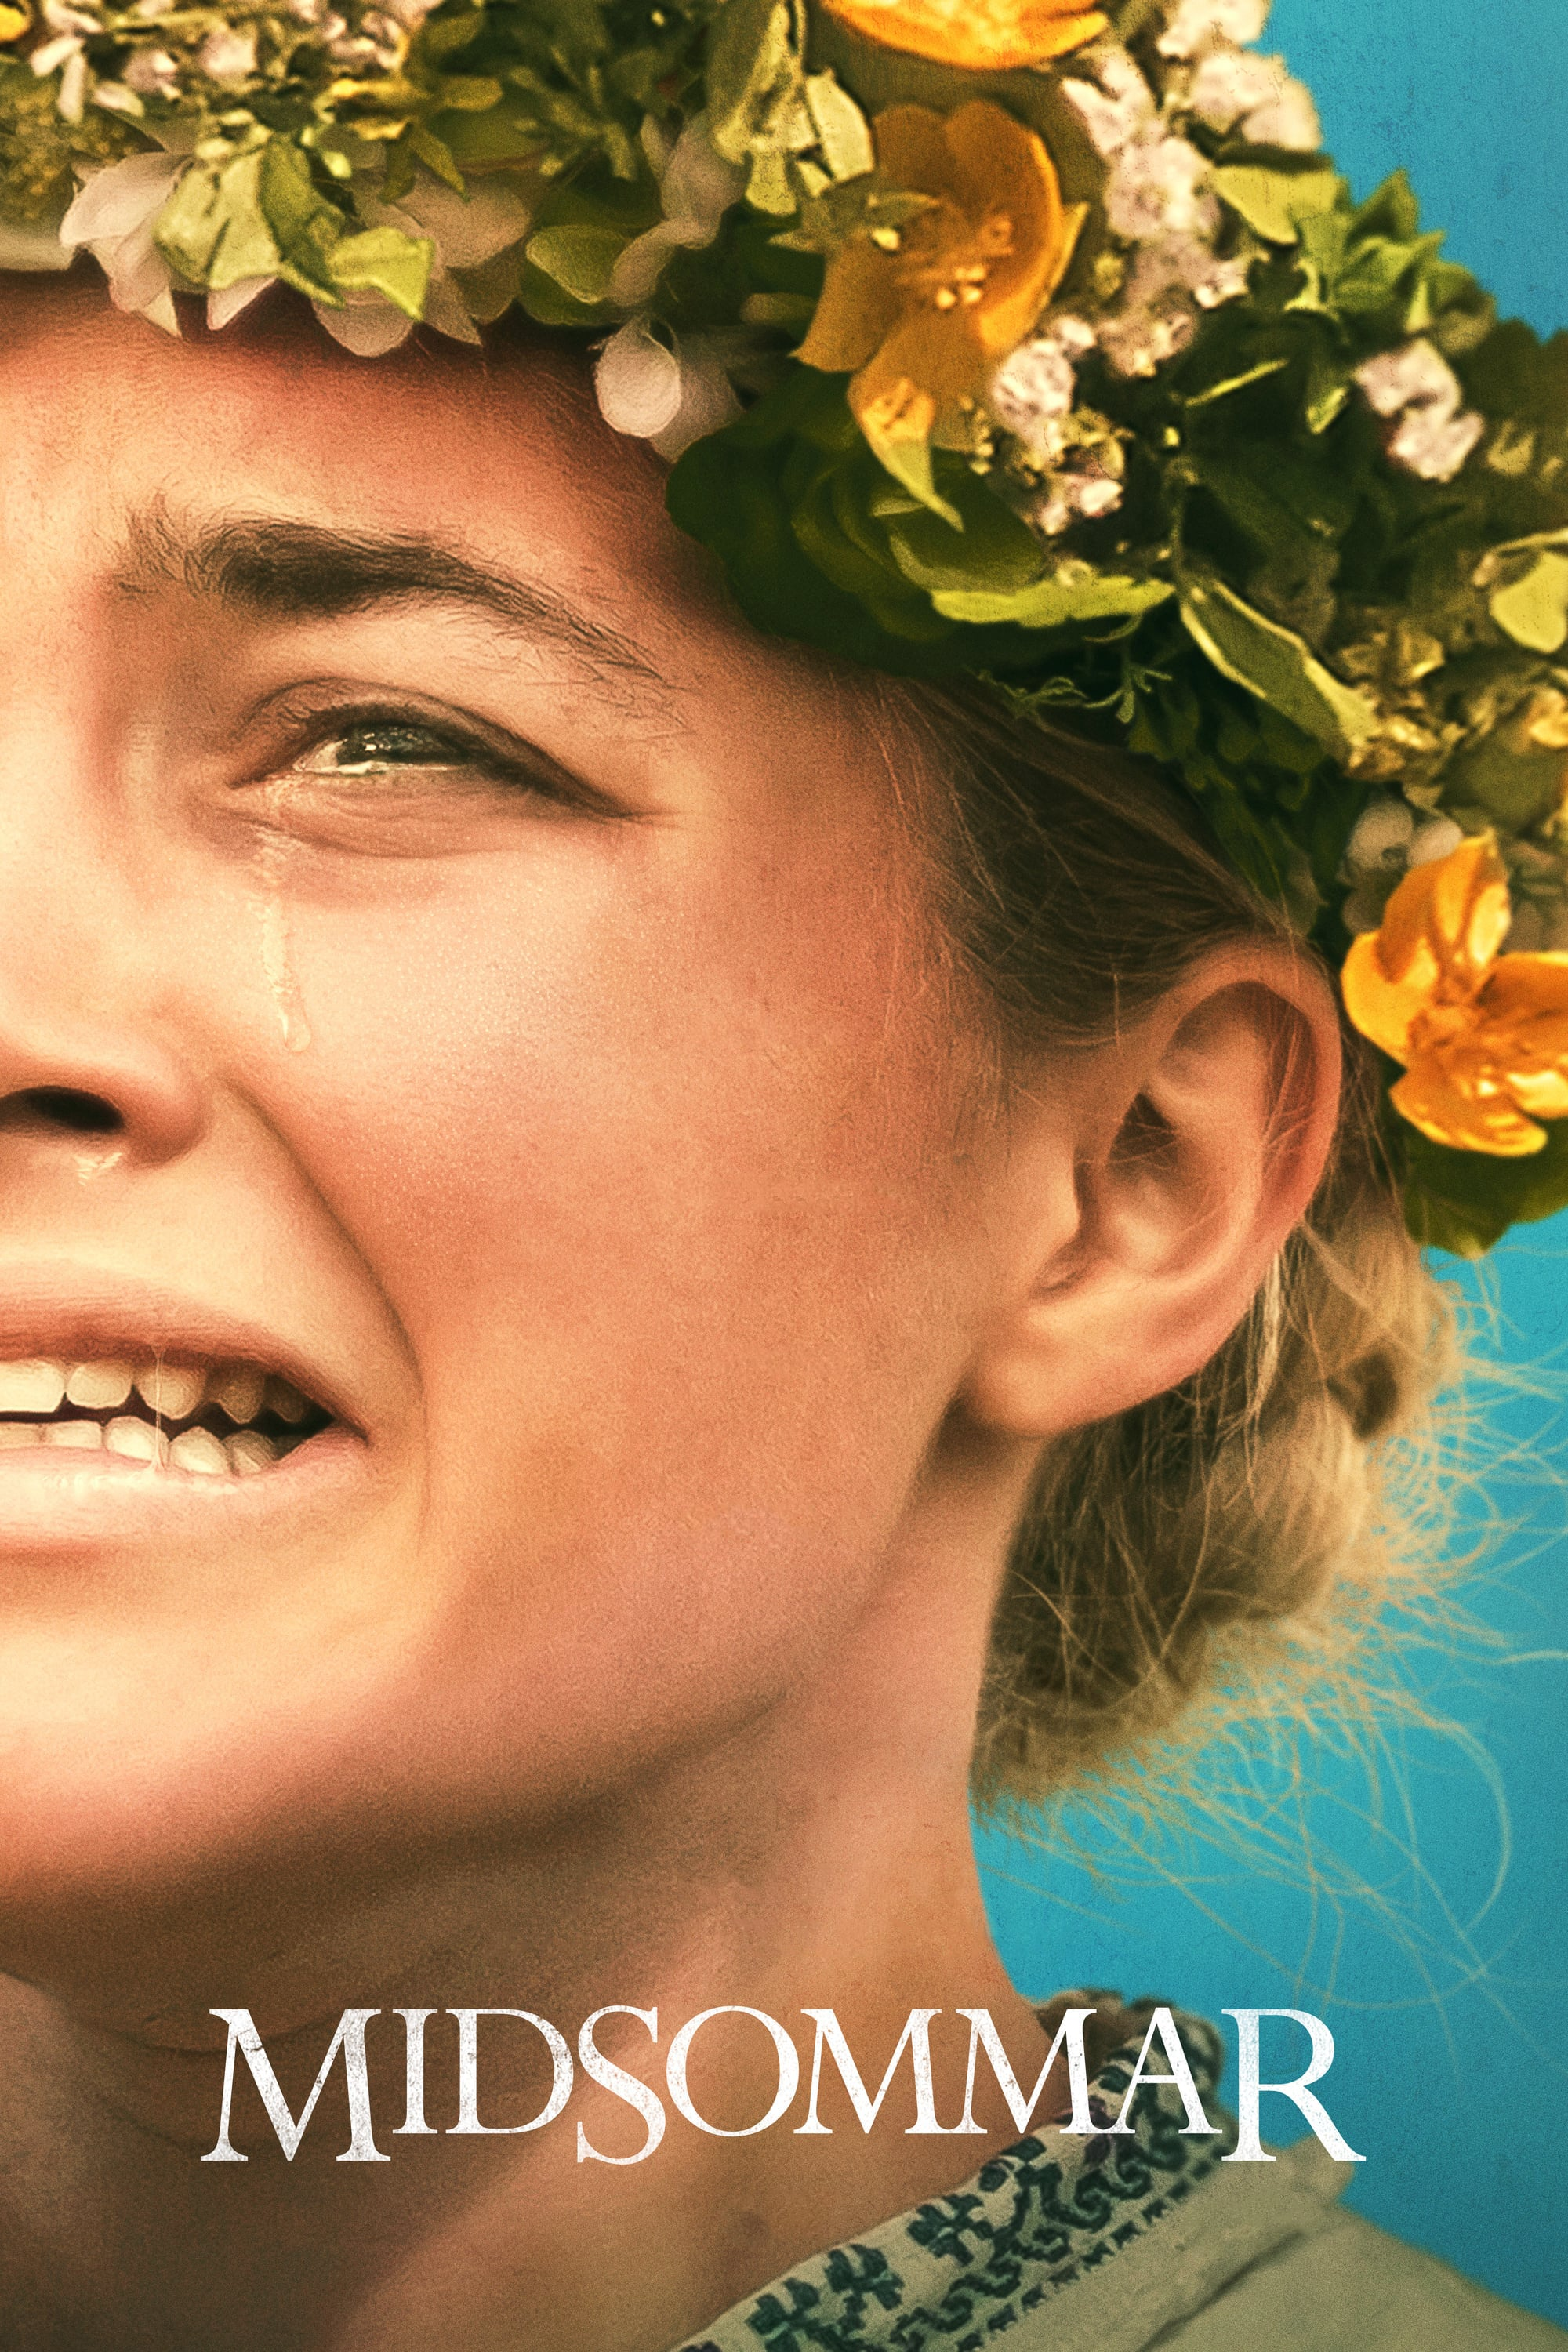 Midsommar (Director's Cut) *RUSH TICKETS ONLY*